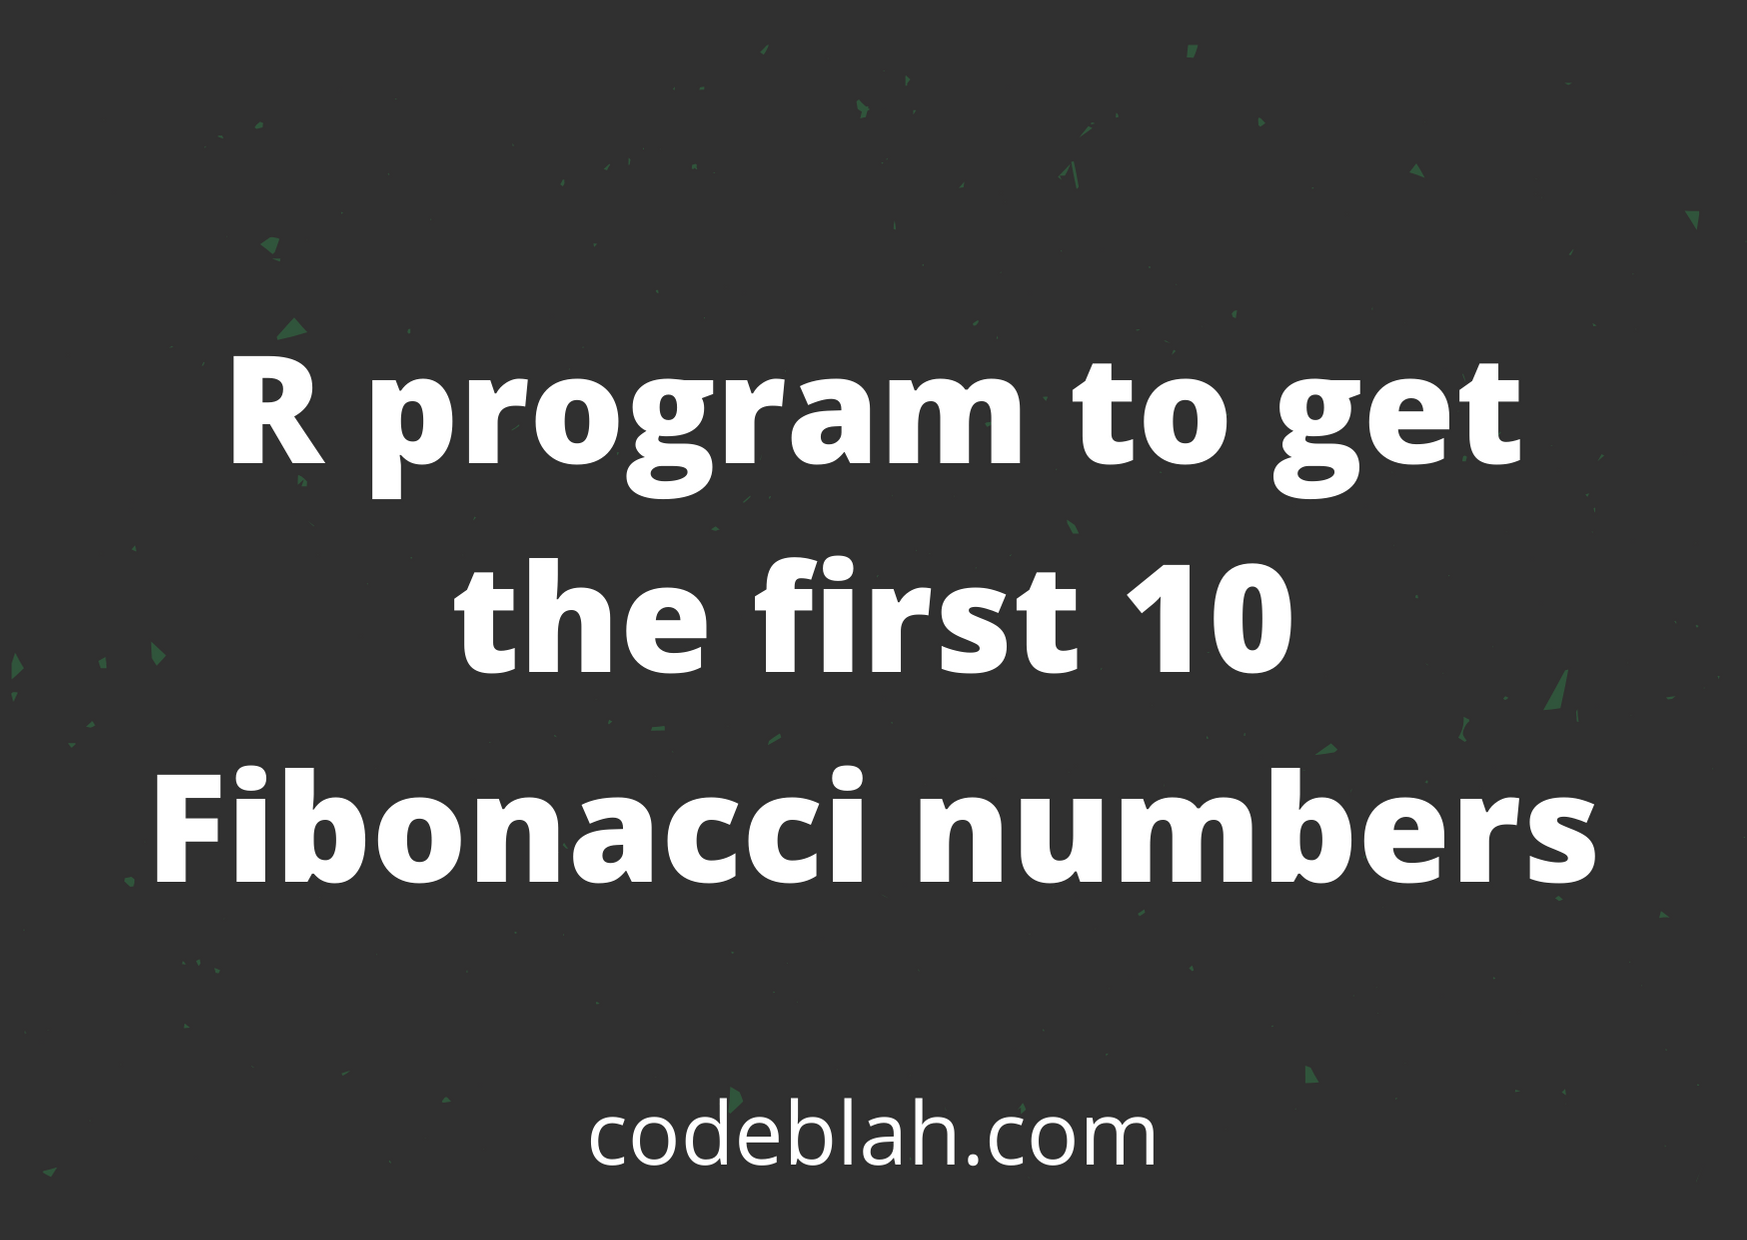 R Program To Get the First 10 Fibonacci Numbers